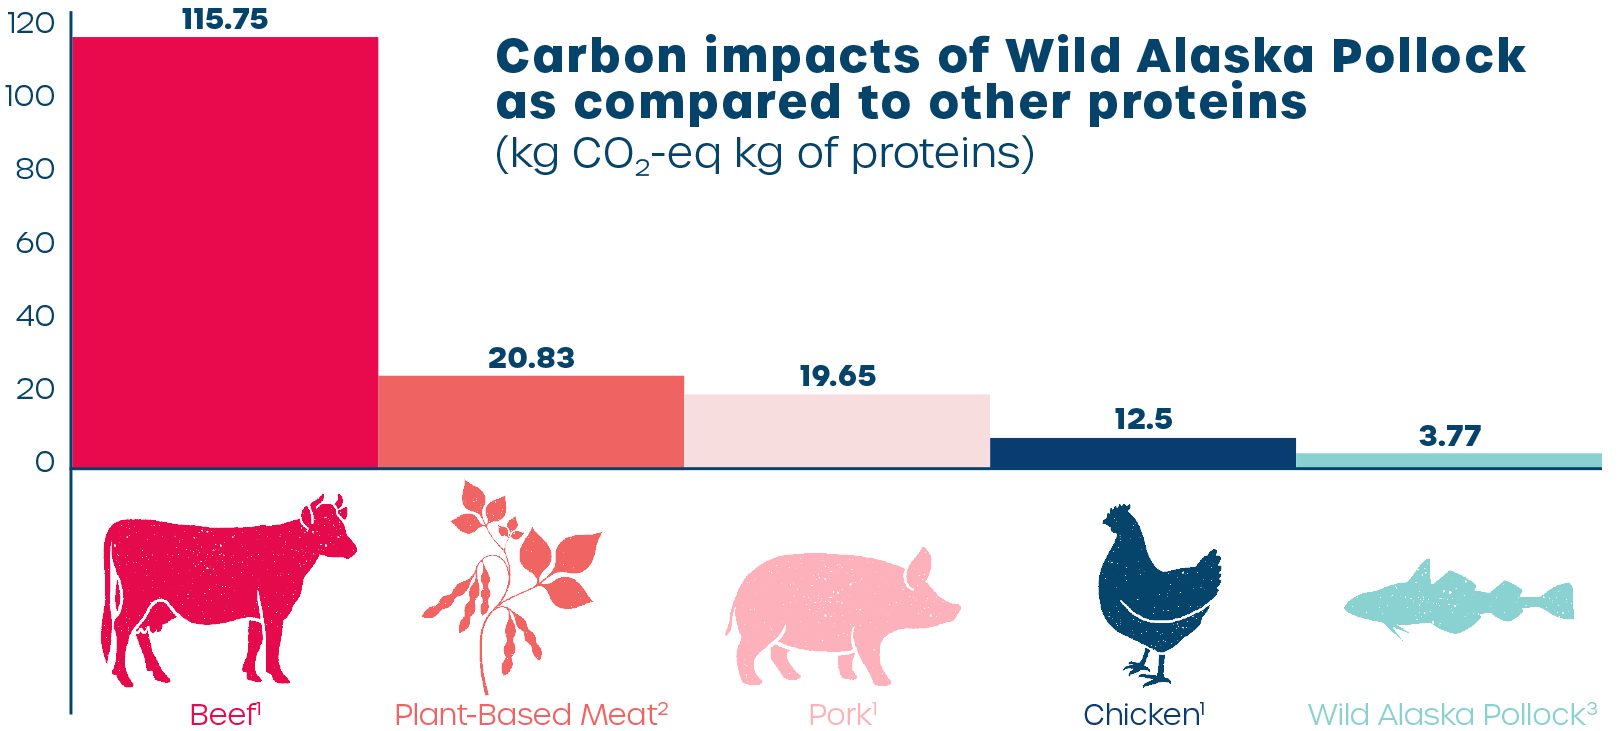 Carbon impacts of Wild Alaska Pollock as compared to other proteins (kg CO2-eq kg of proteins)